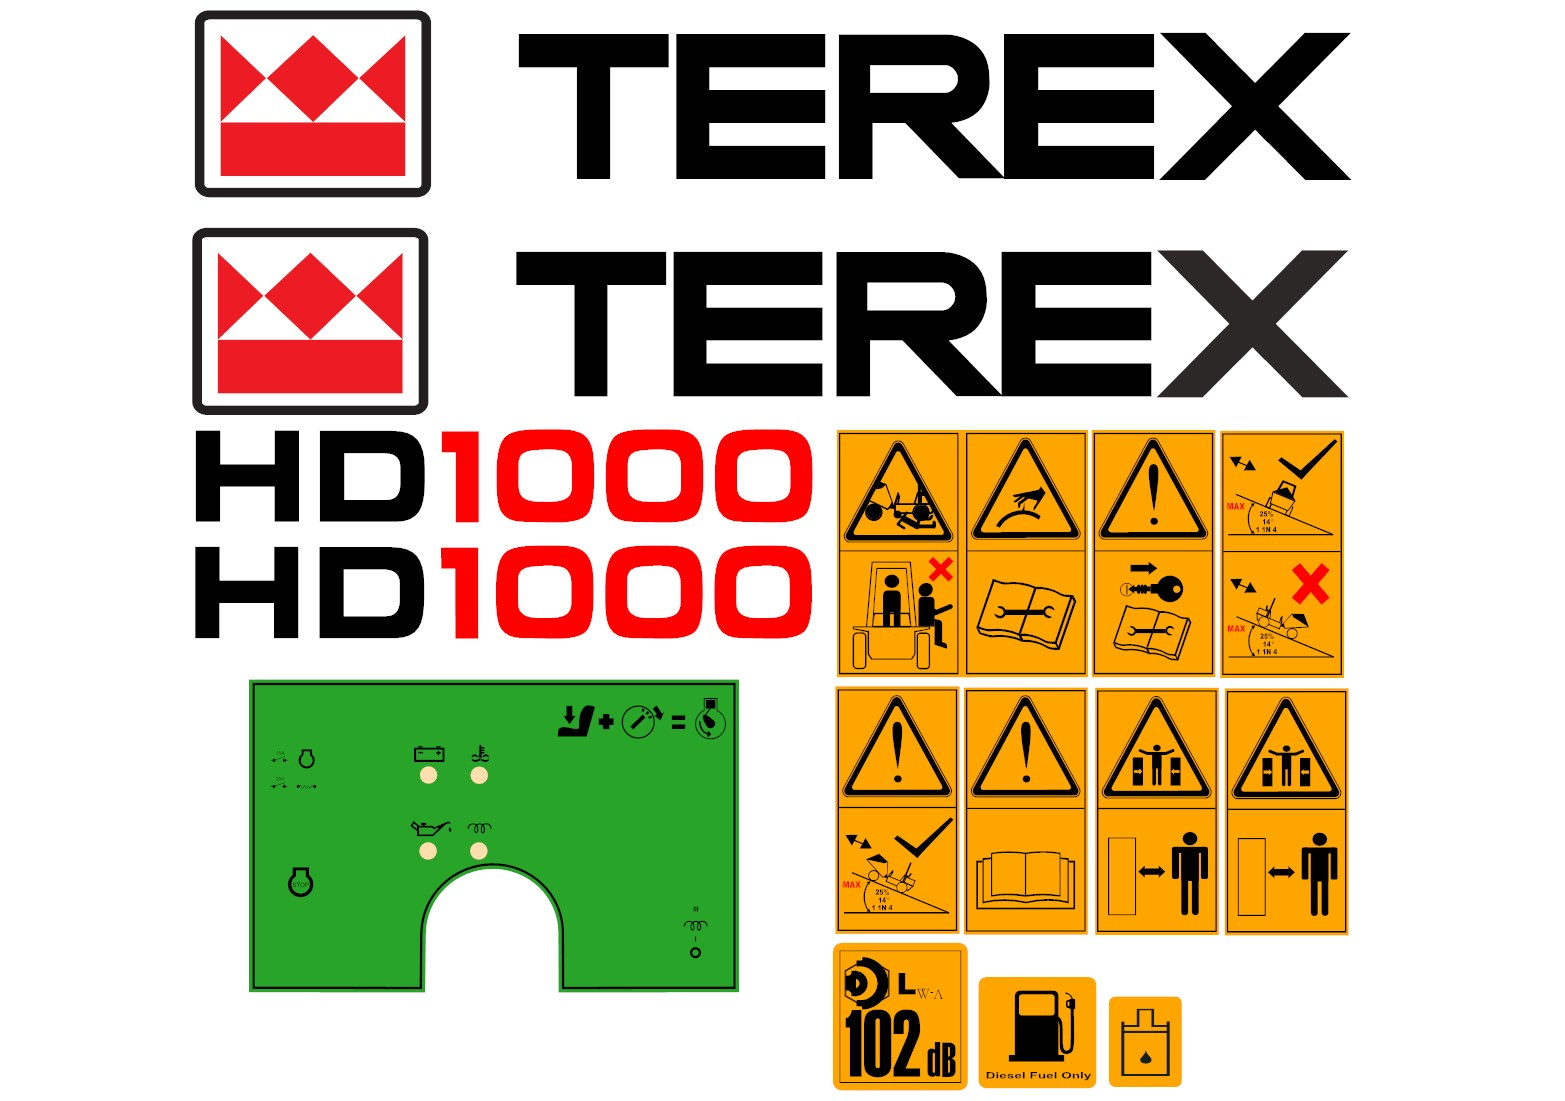 TEREX HD1000 terex hd1000 dumper decal set amc machinery decals terex hd1000 wiring diagram at panicattacktreatment.co